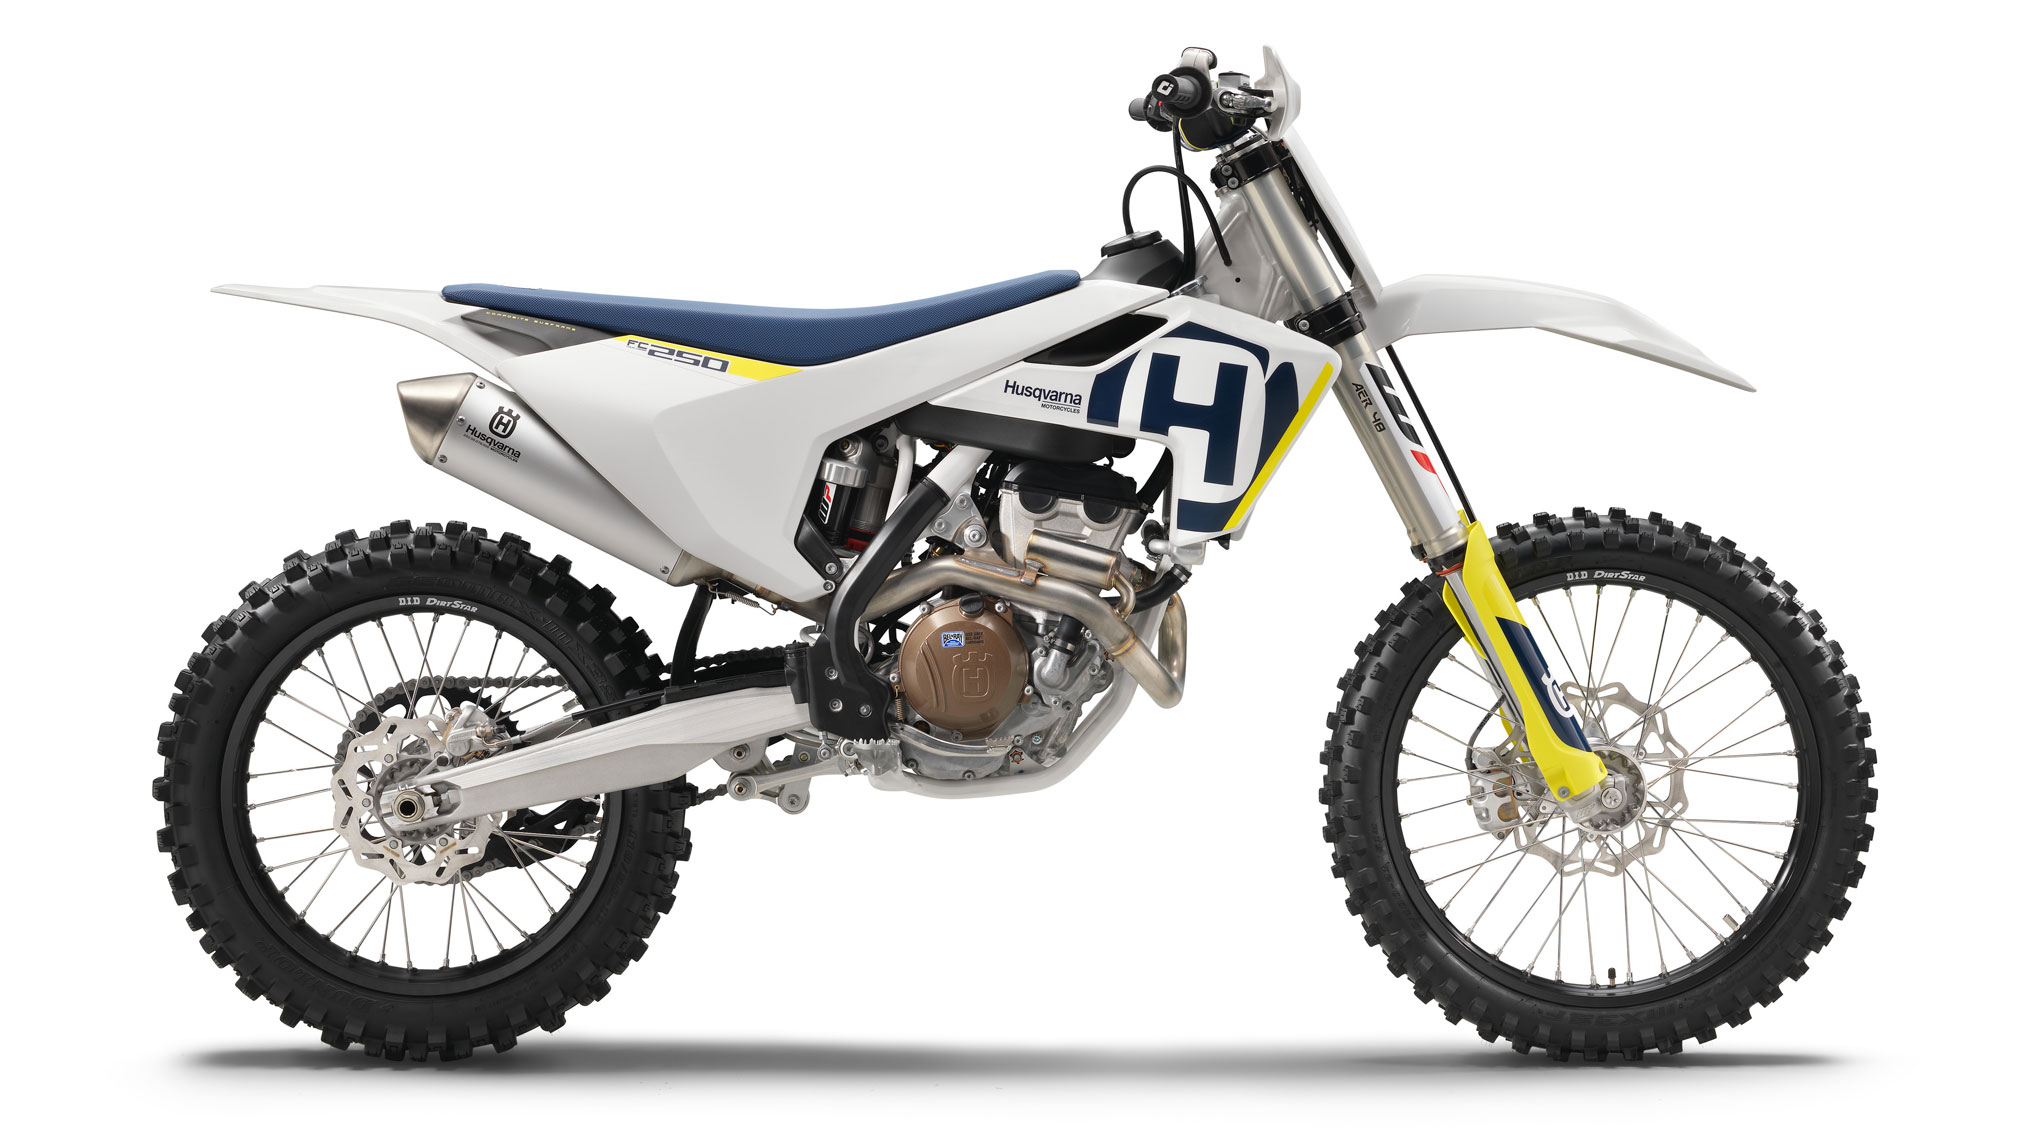 2018 Husqvarna FC250 Review • TotalMotorcycle